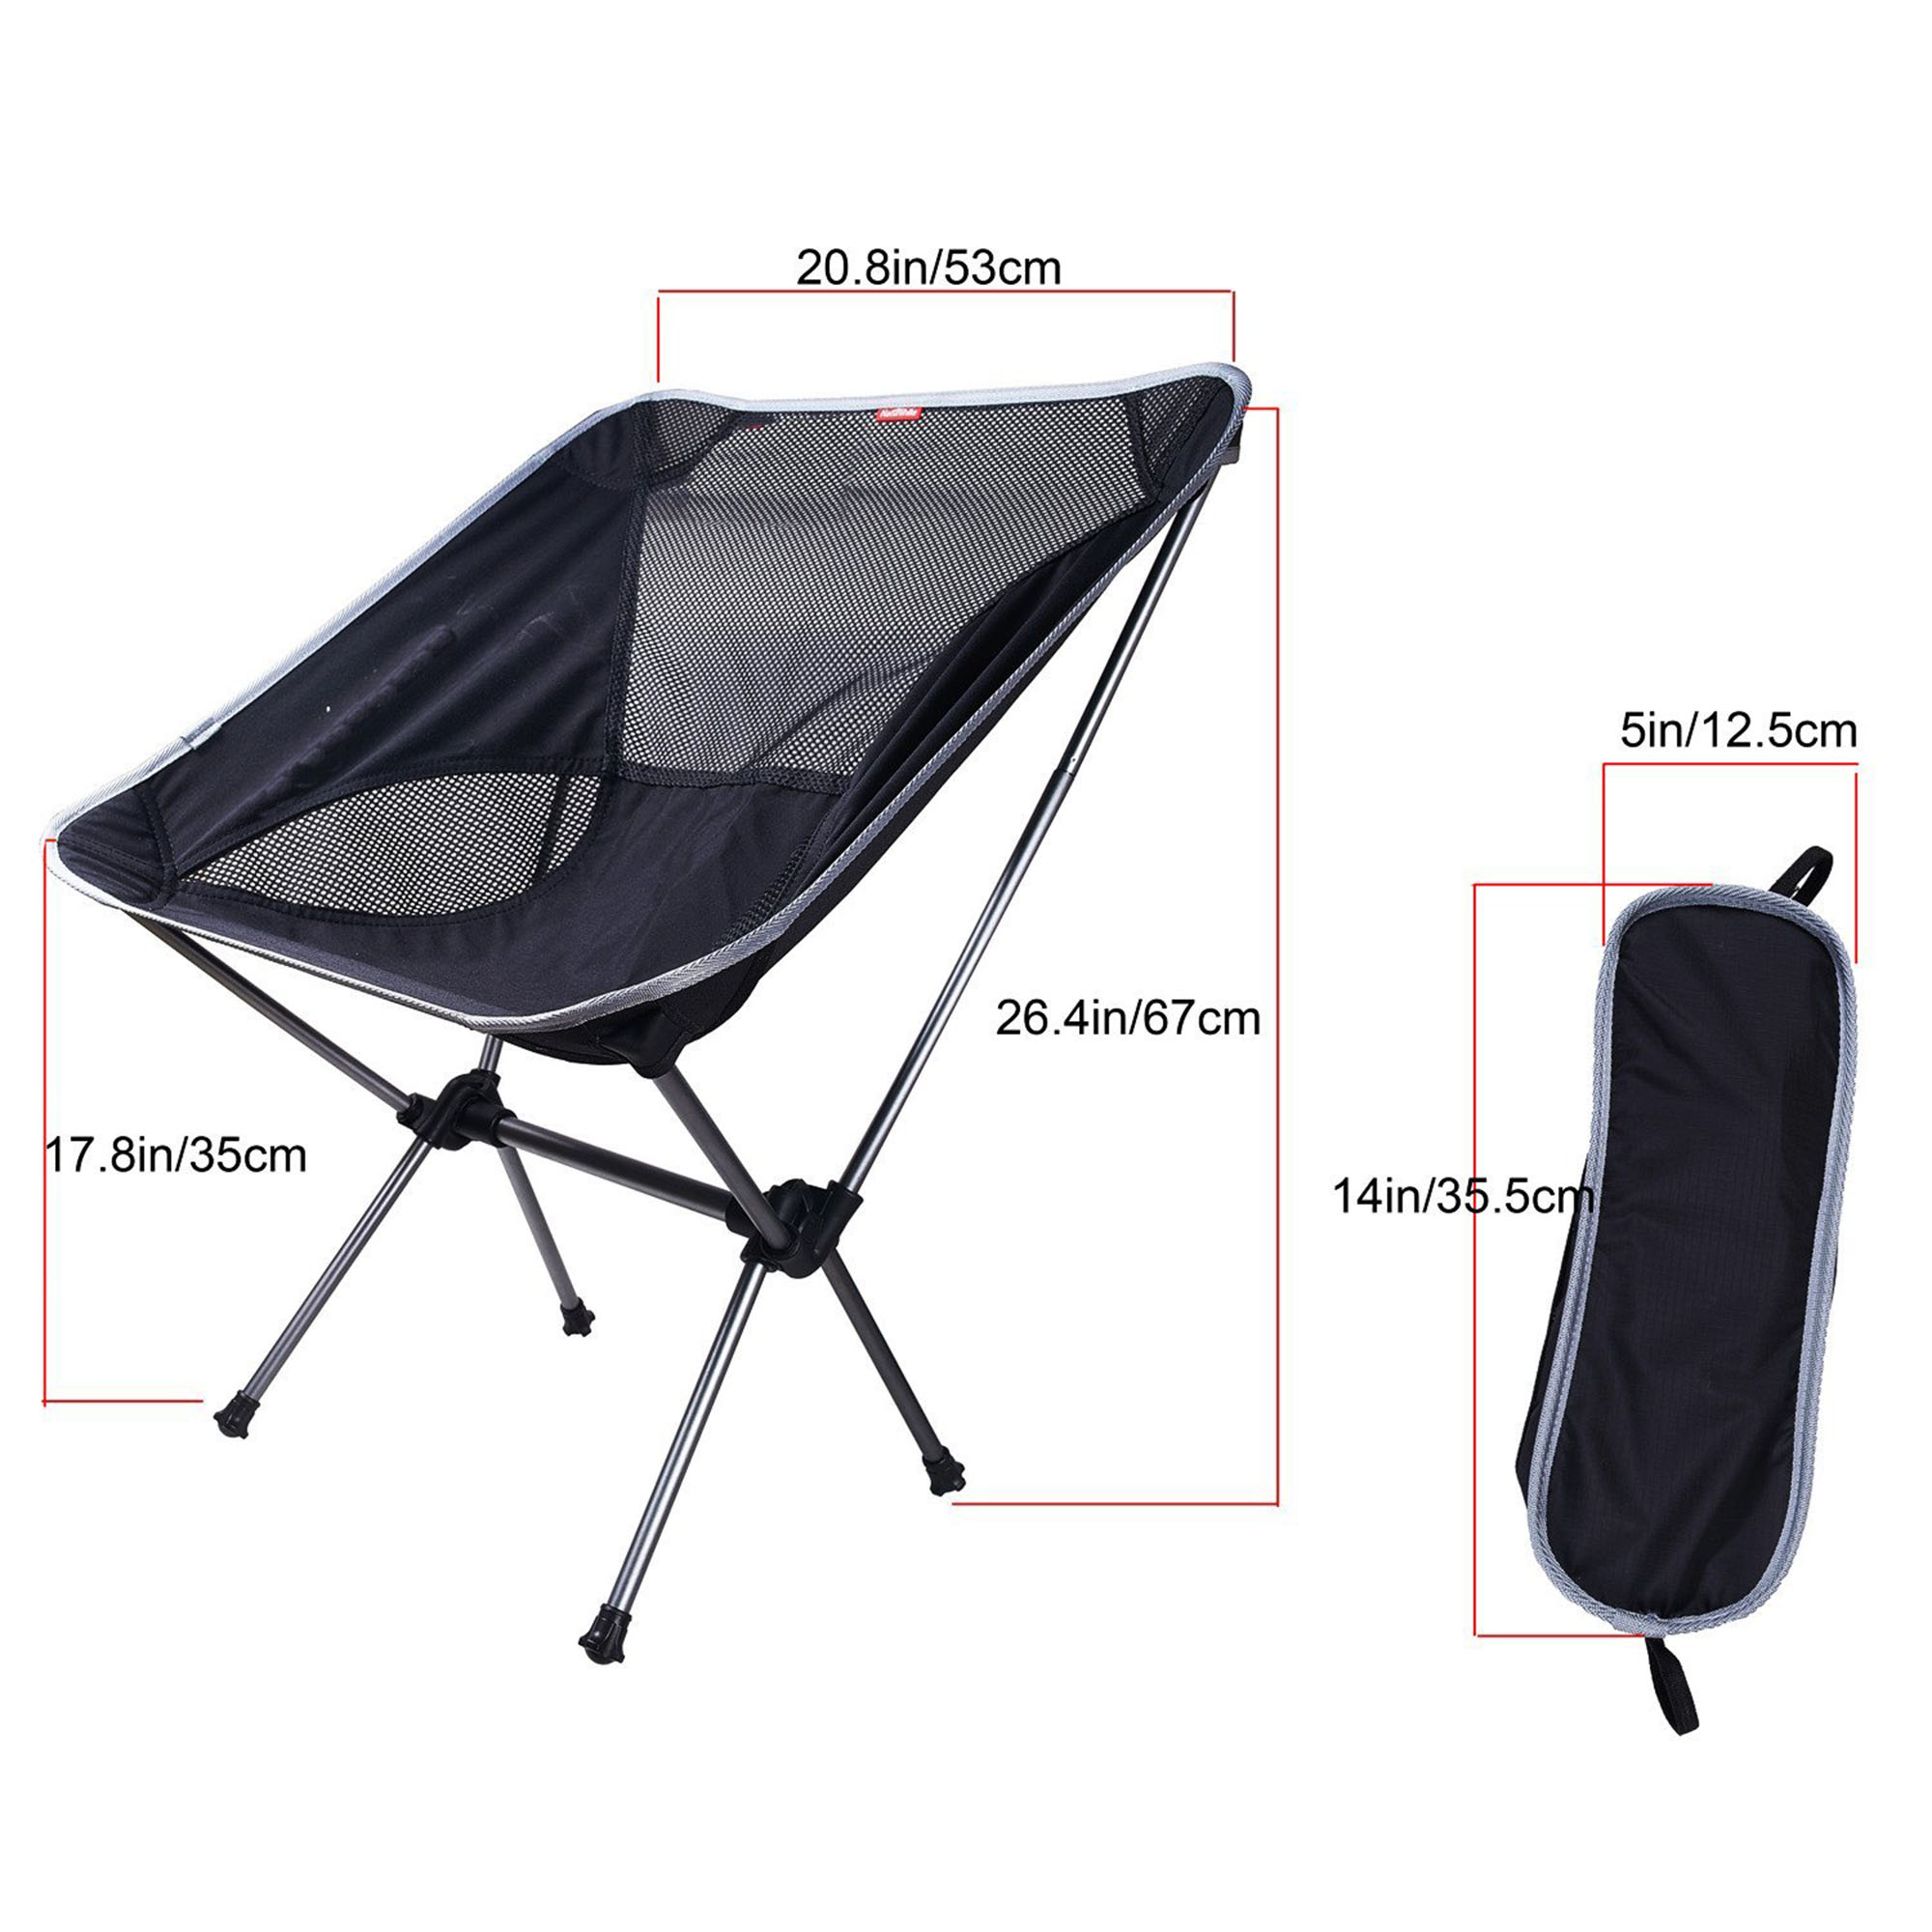 SehrGo Portable Ultralight Collapsible Moon Leisure Campi...